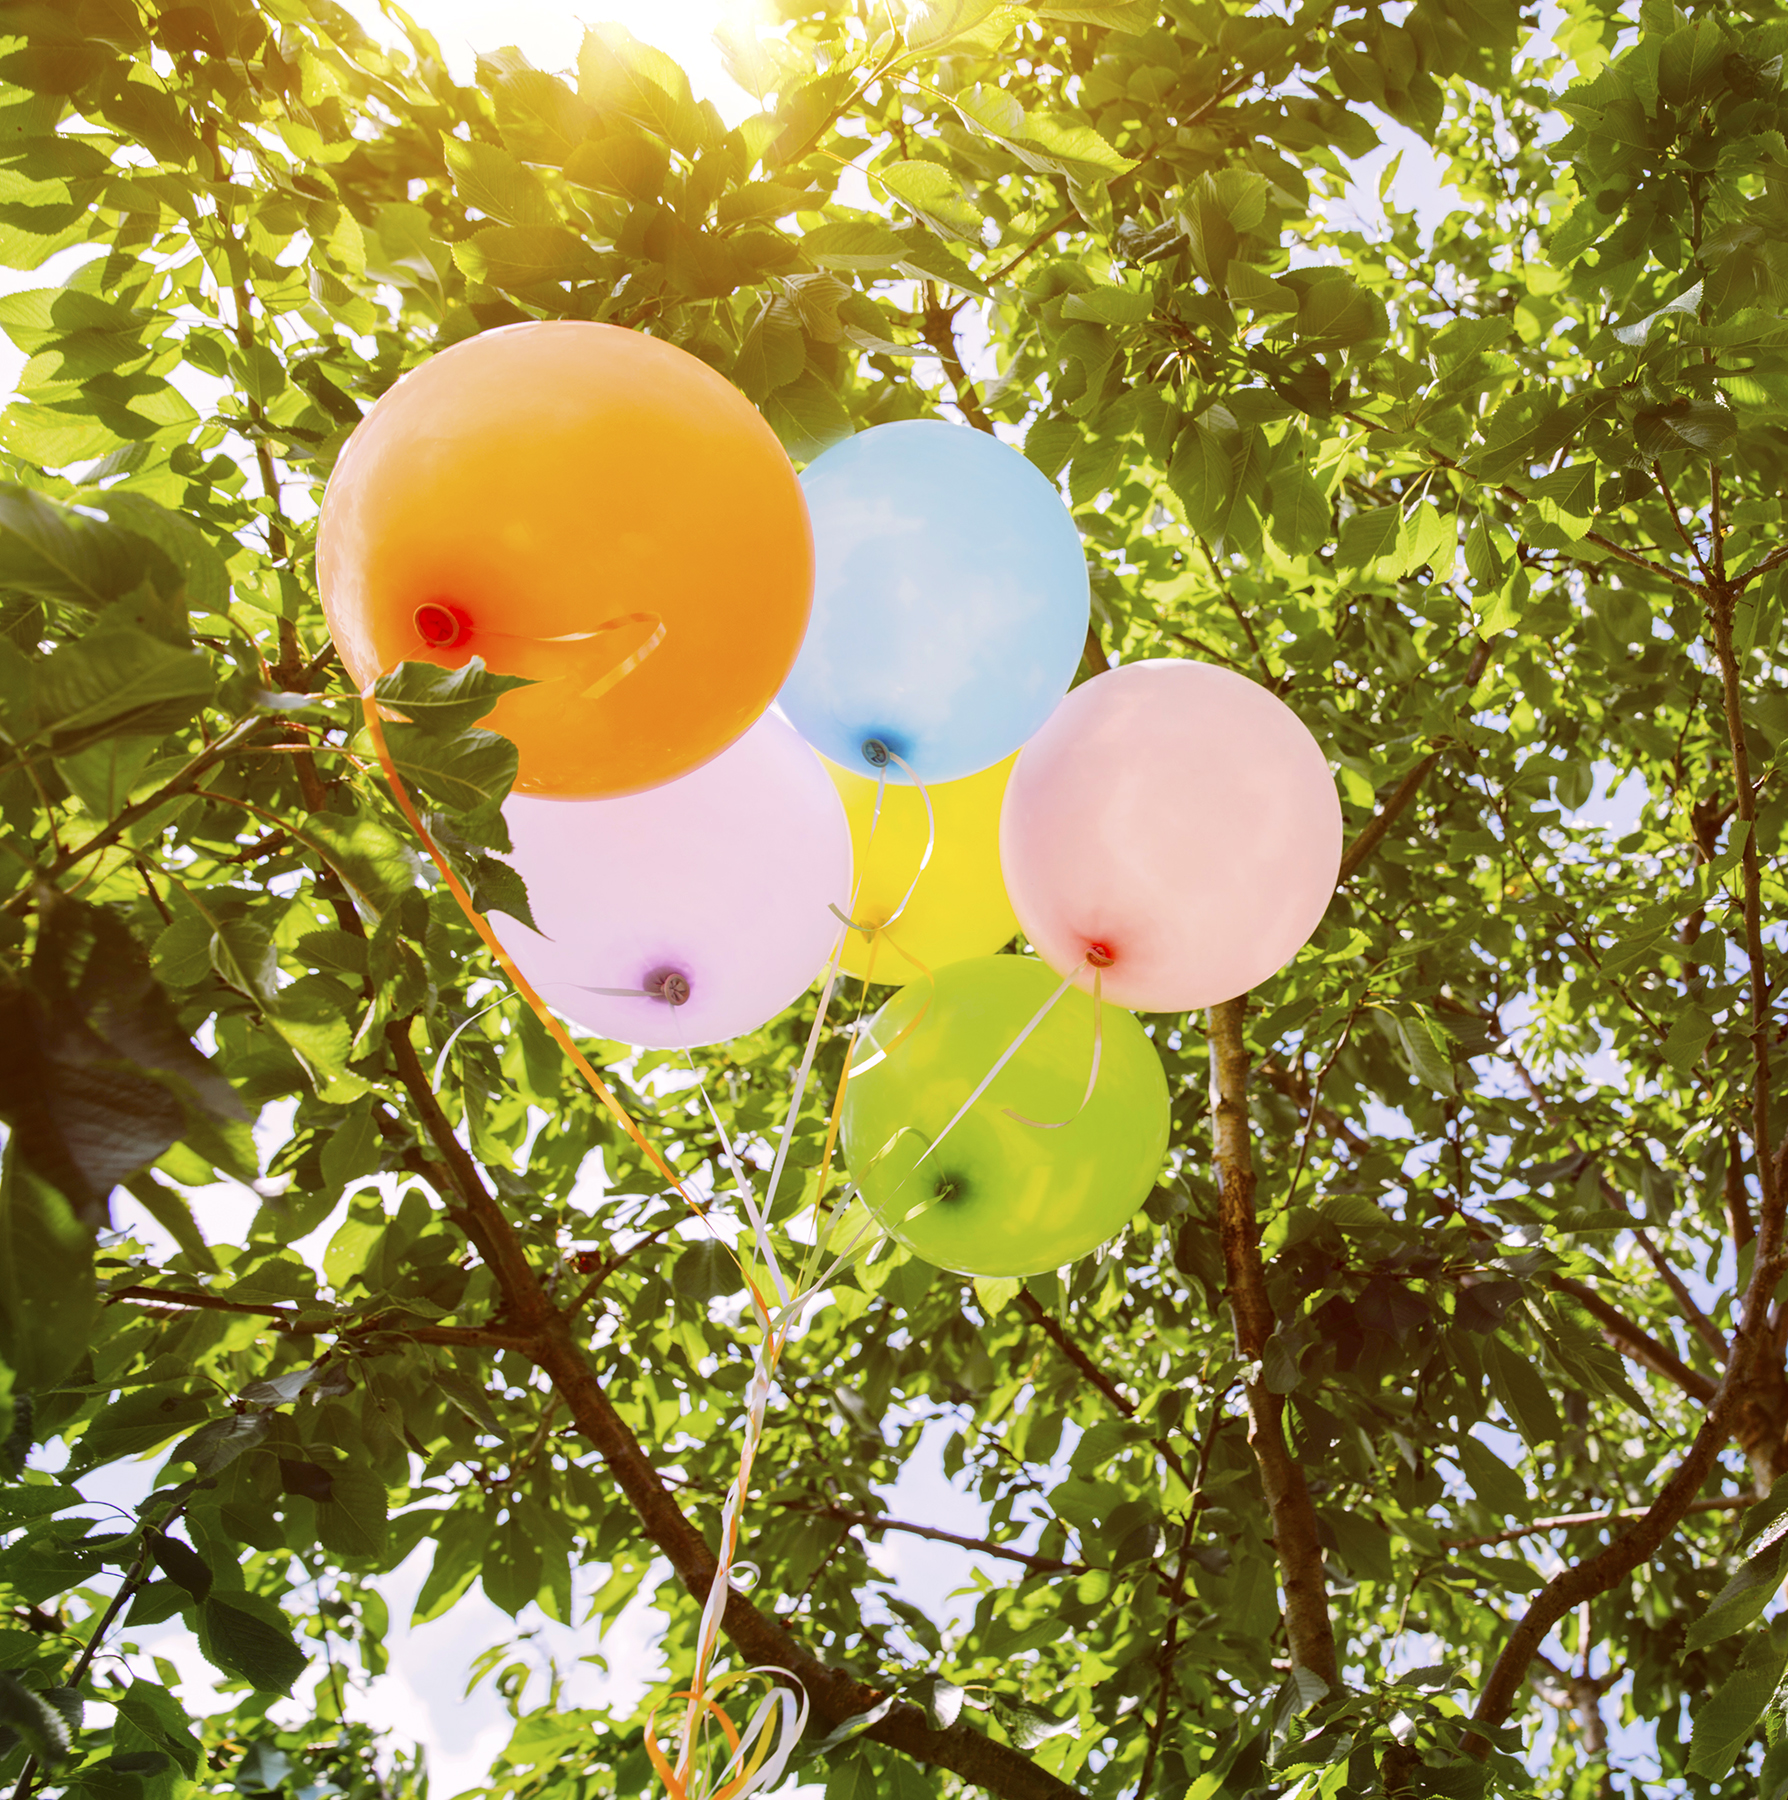 Balloons in tree